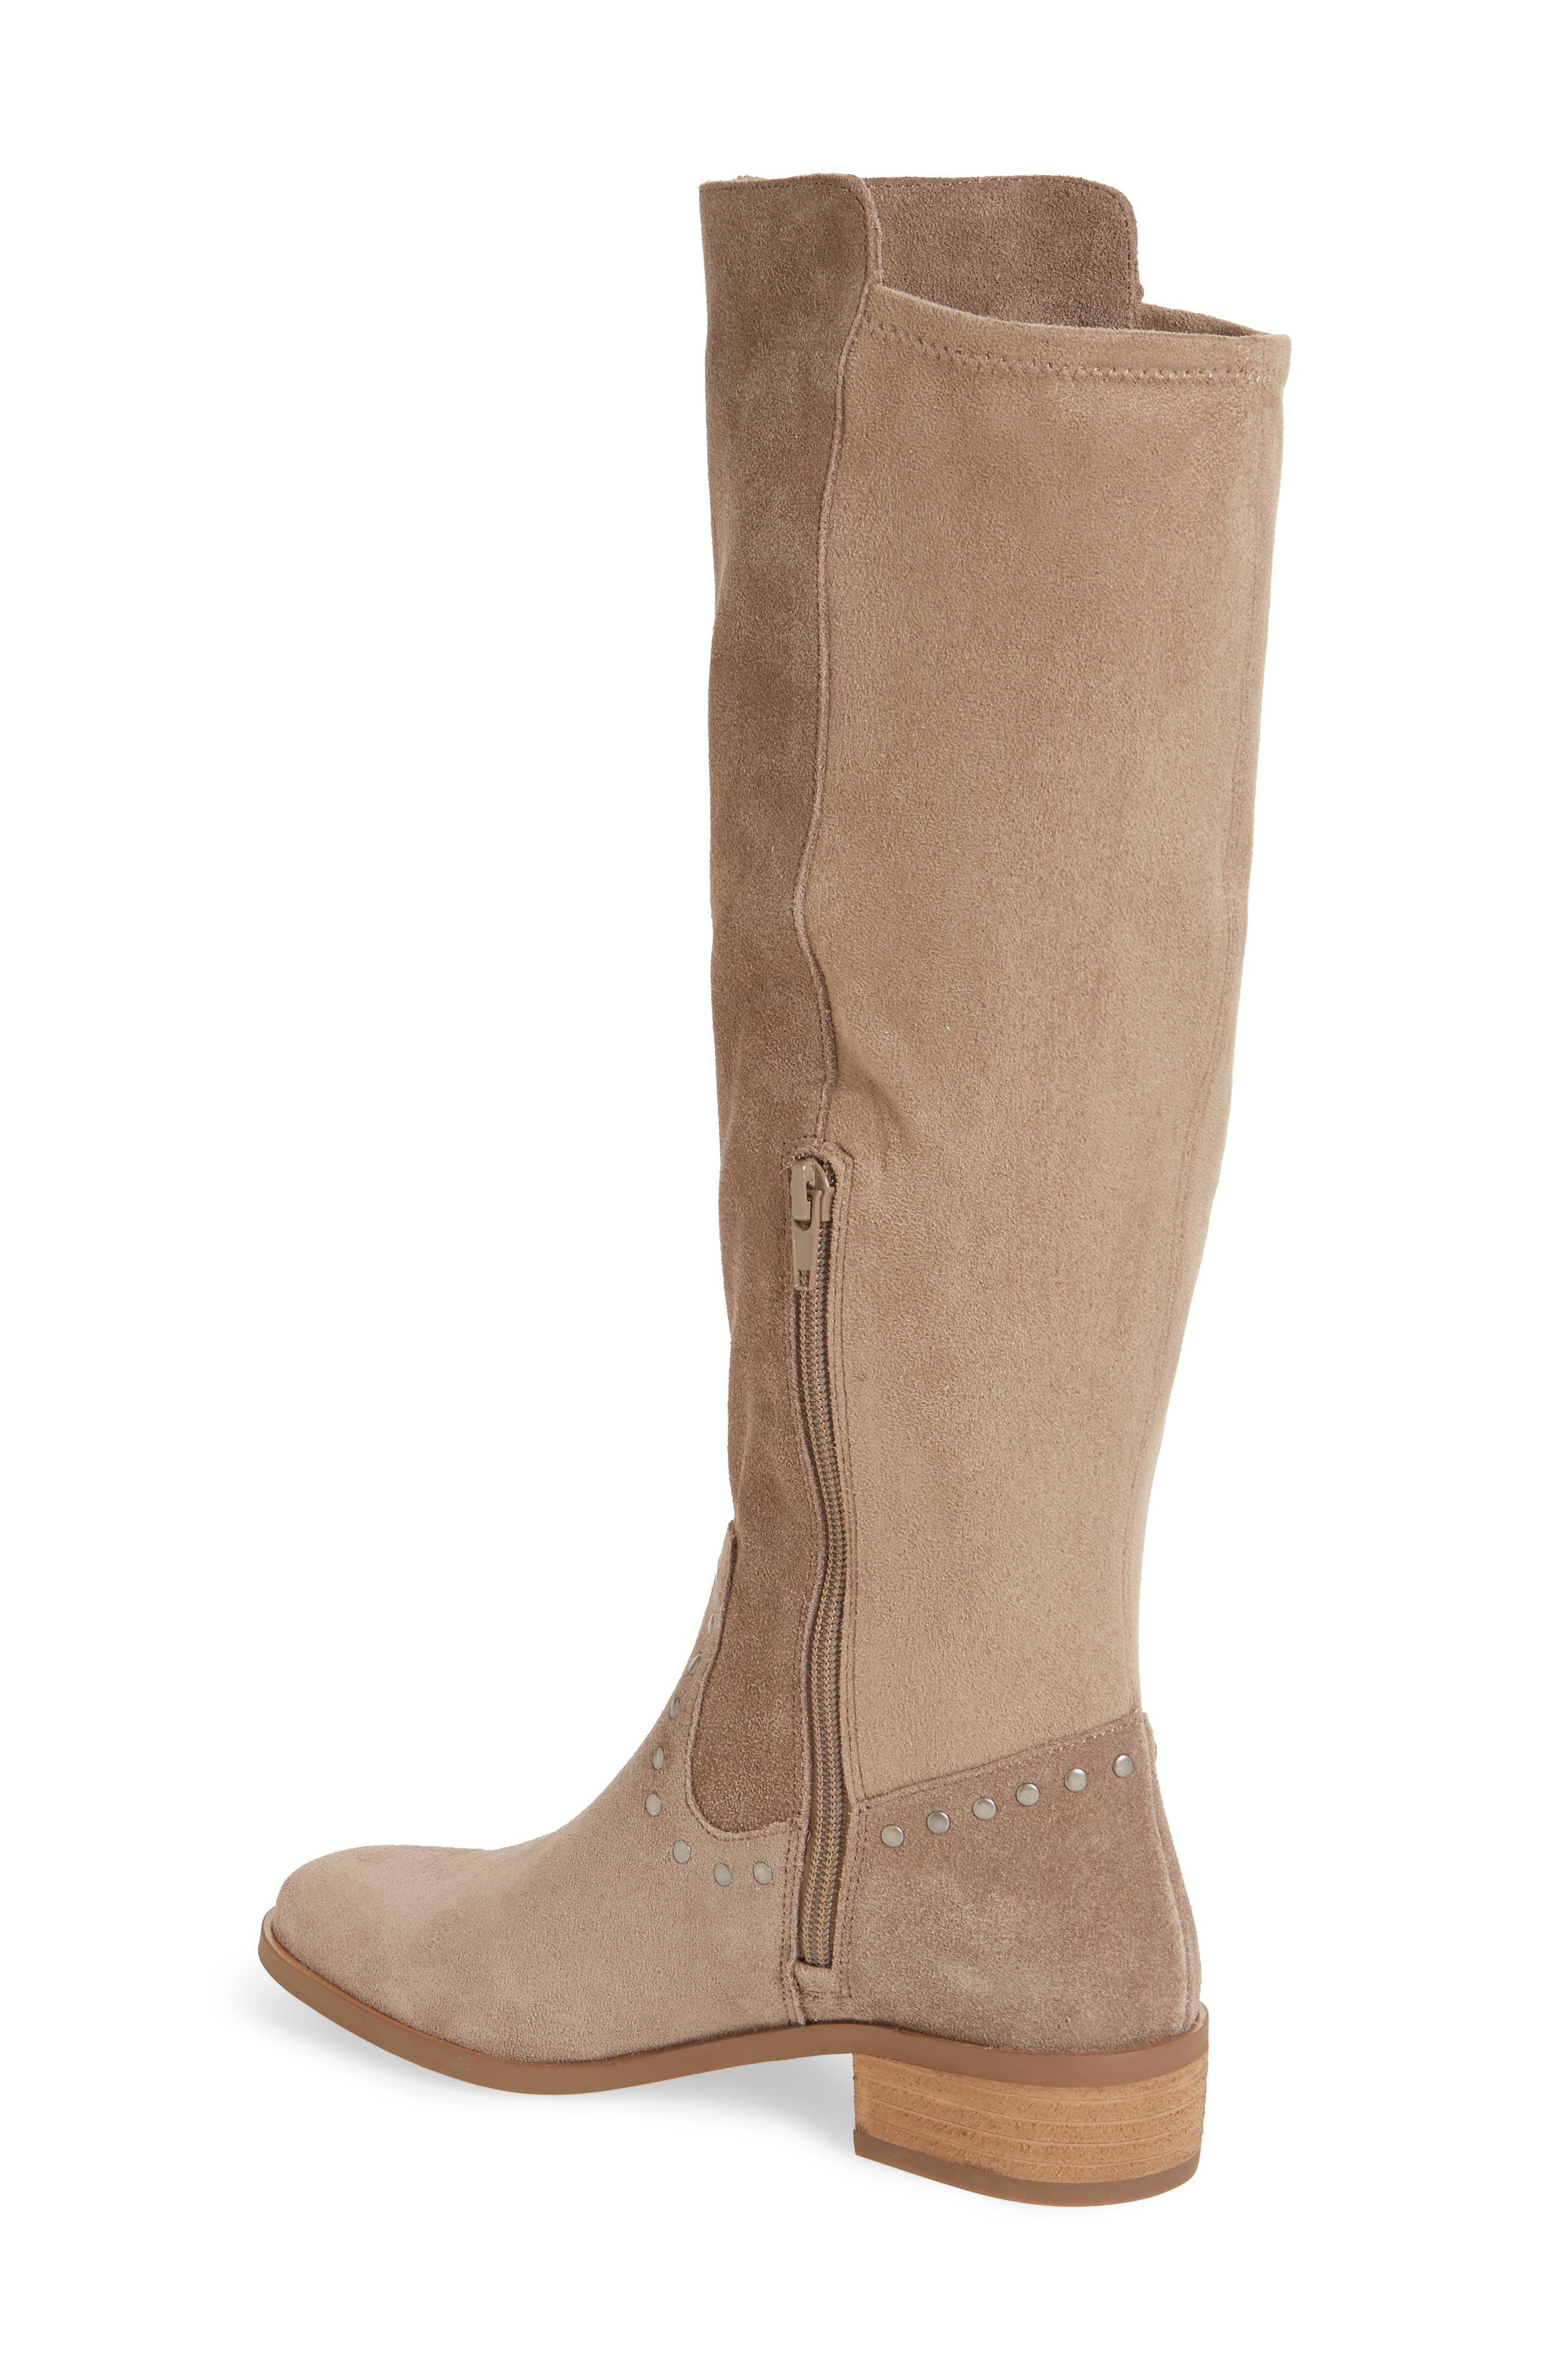 Calvenia Knee High Boot,                             Alternate thumbnail 2, color,                             FALL TAUPE SUEDE